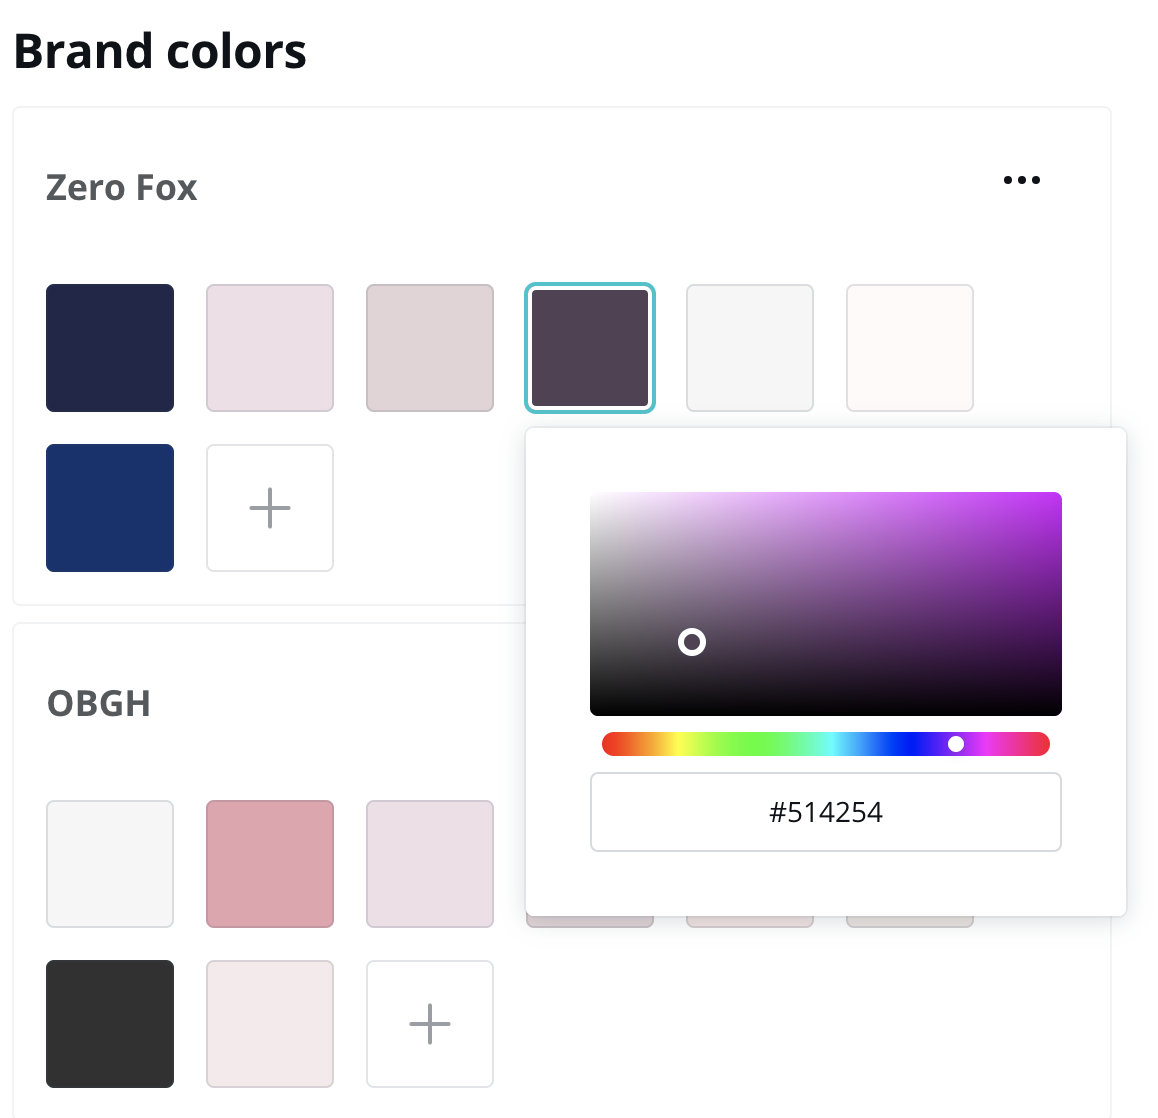 You can upload all your brand colours to Canva Pro in their brand kit feature